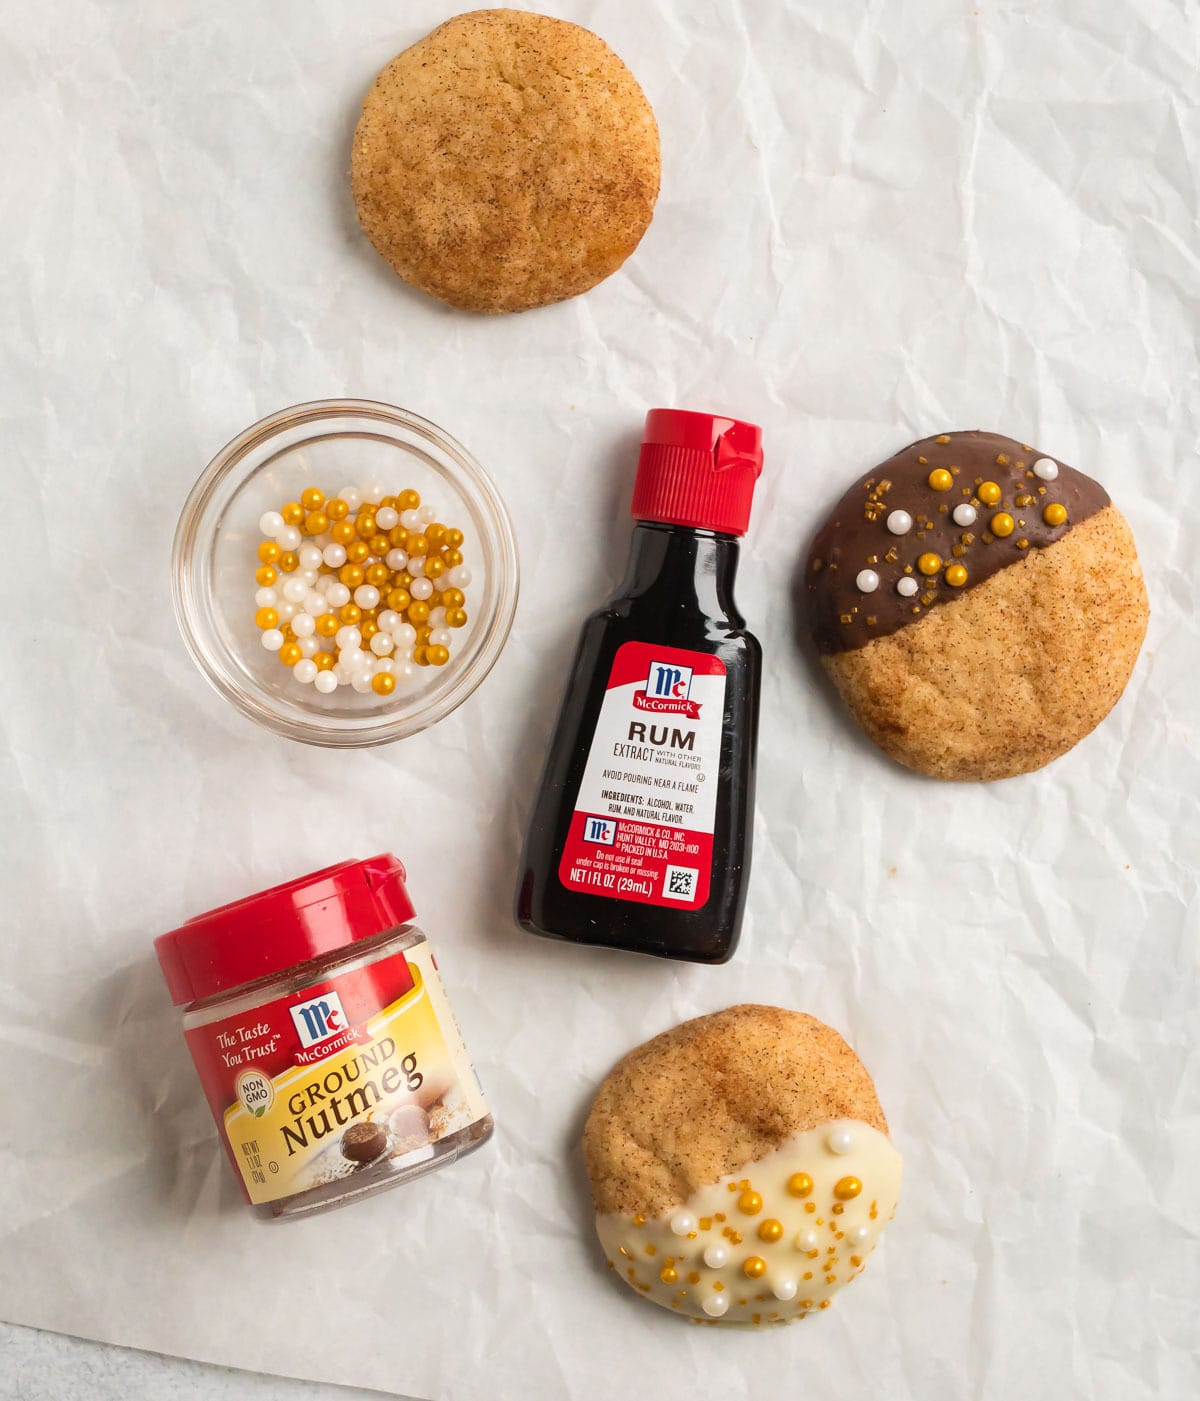 Rum Snickerdoodles with a bottle of rum extract